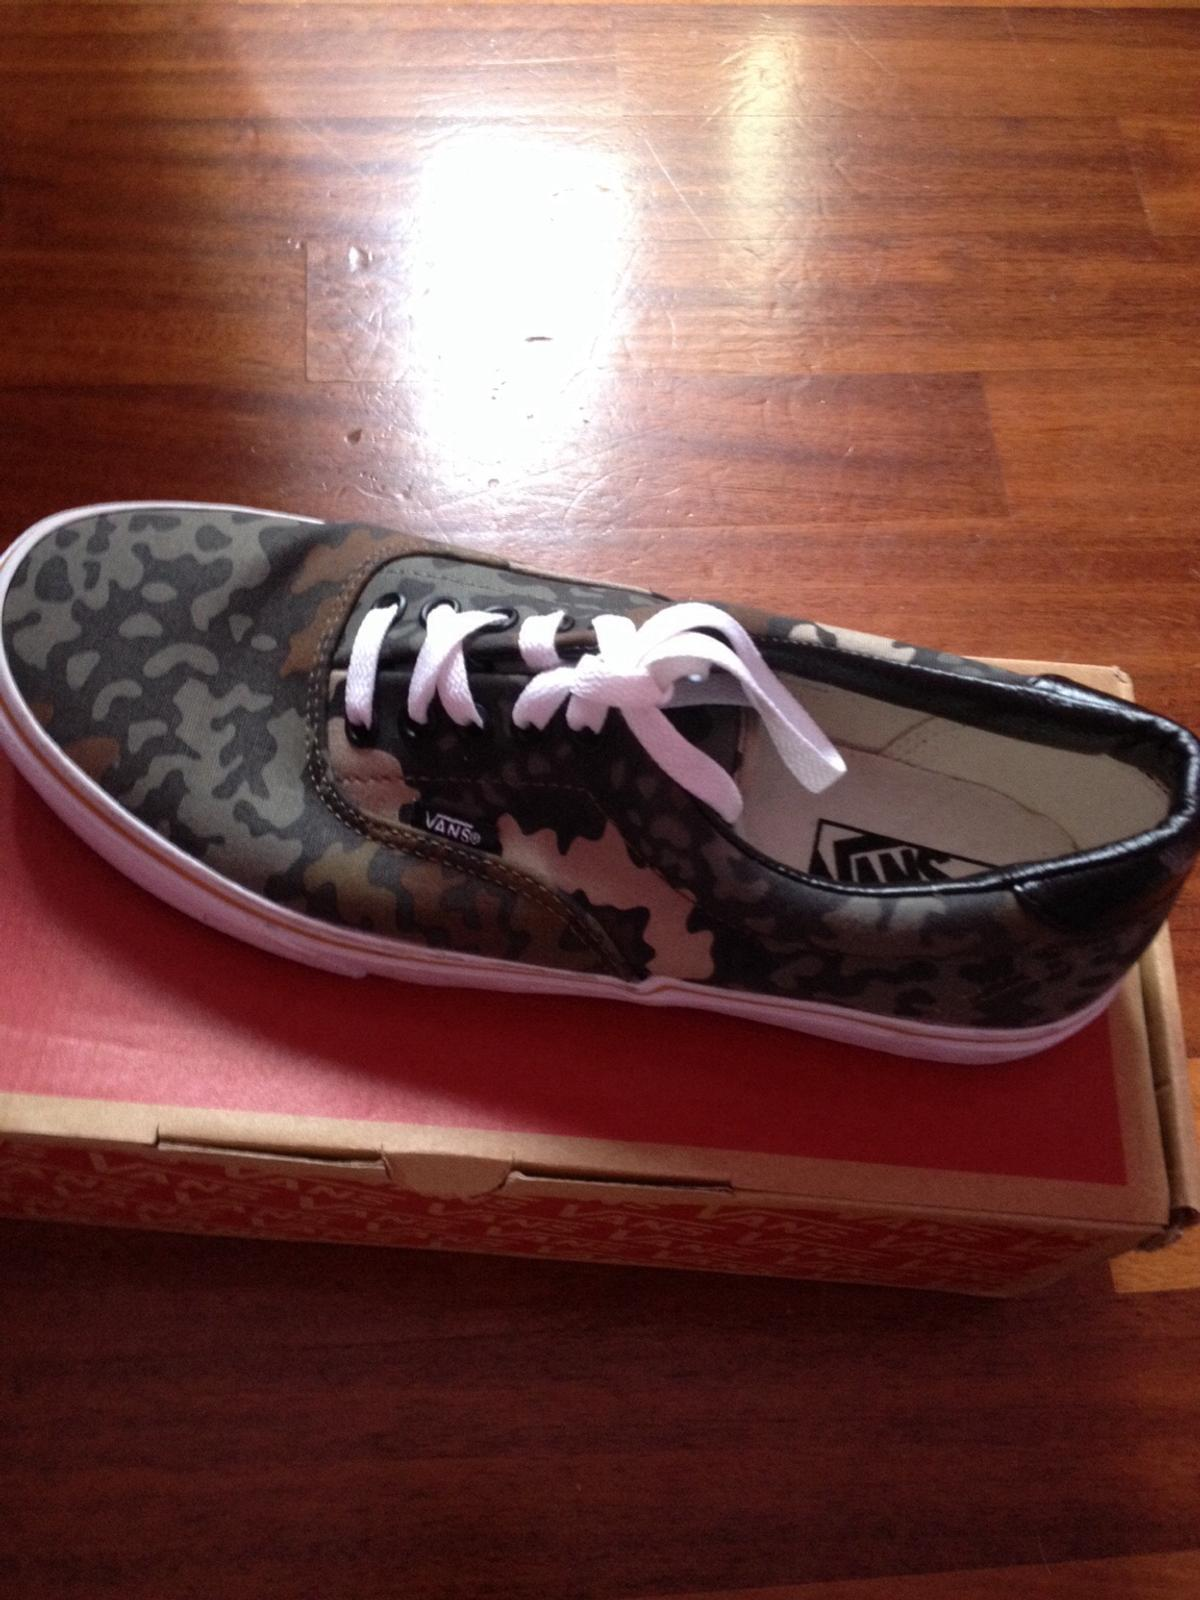 Scarpe vans mimetiche in 00171 Roma for €30.00 for sale | Shpock